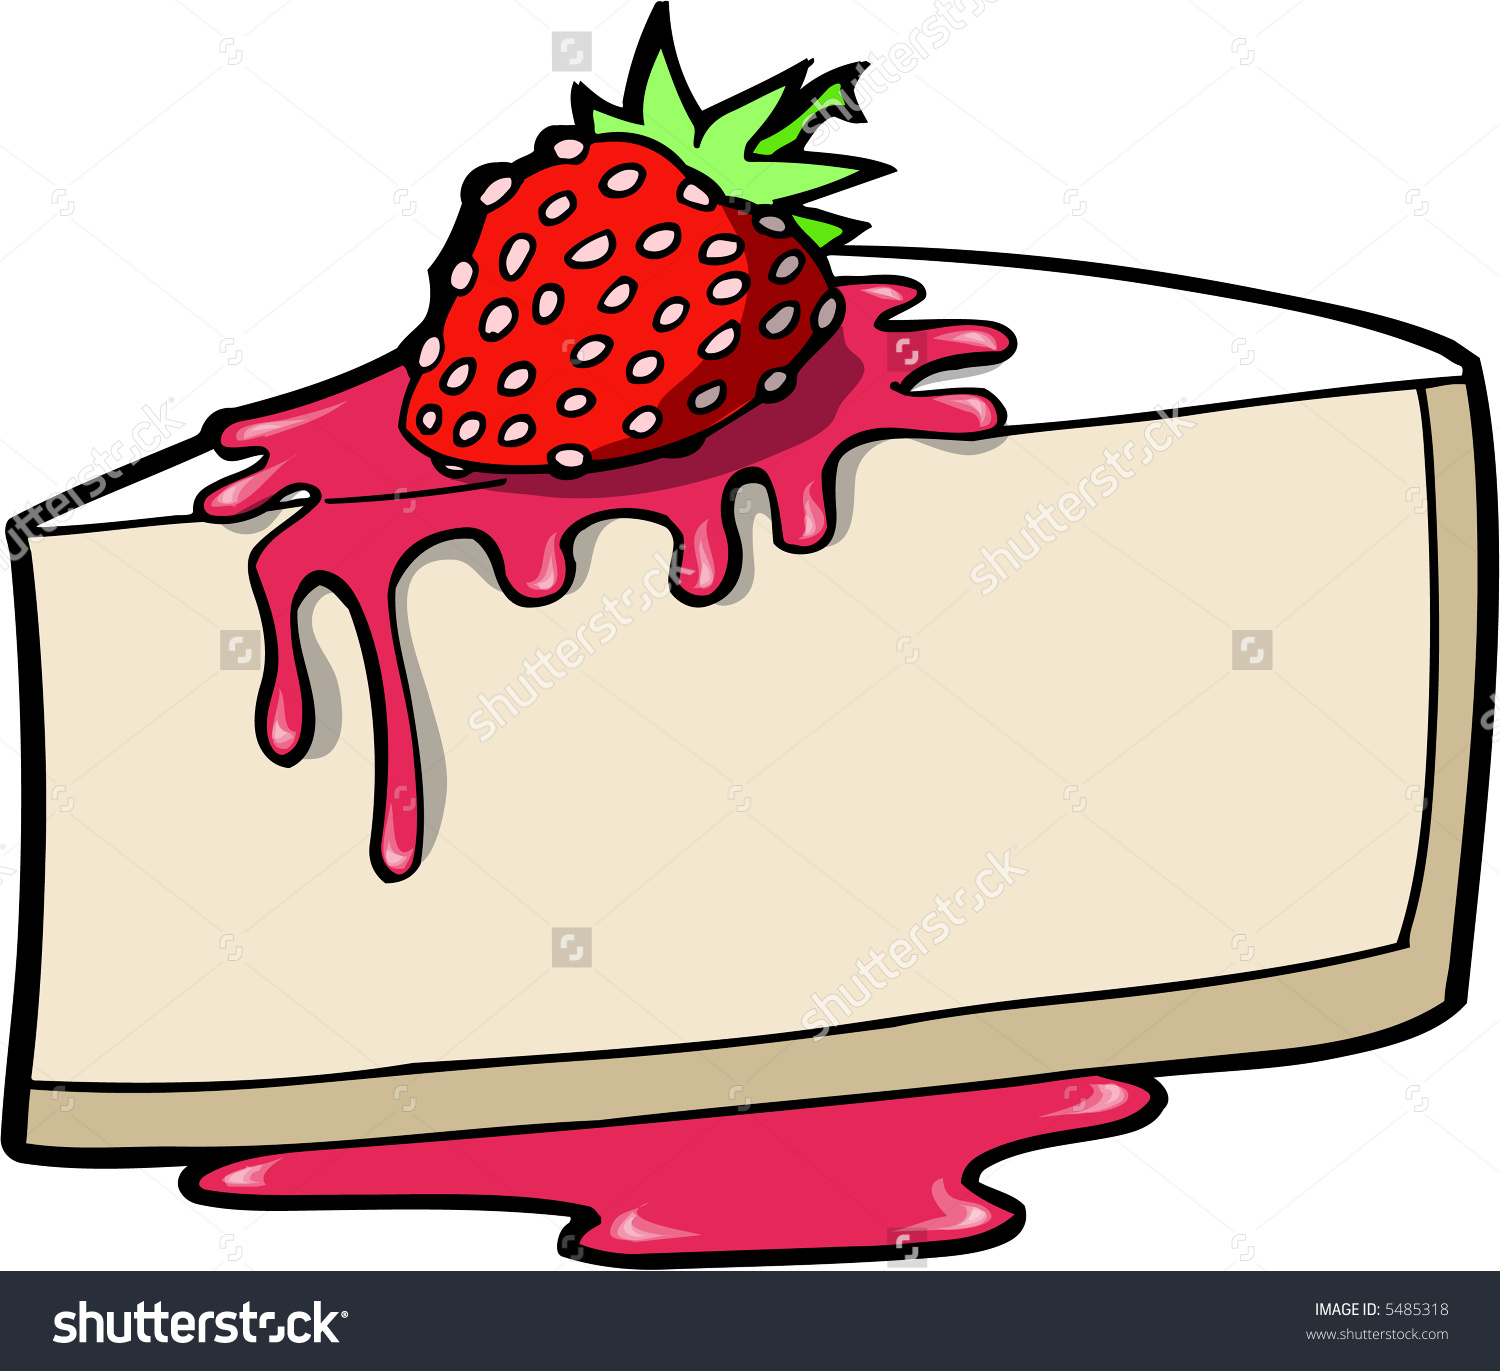 Cheese Cake Vector Illustration Stock Vector 5485318.